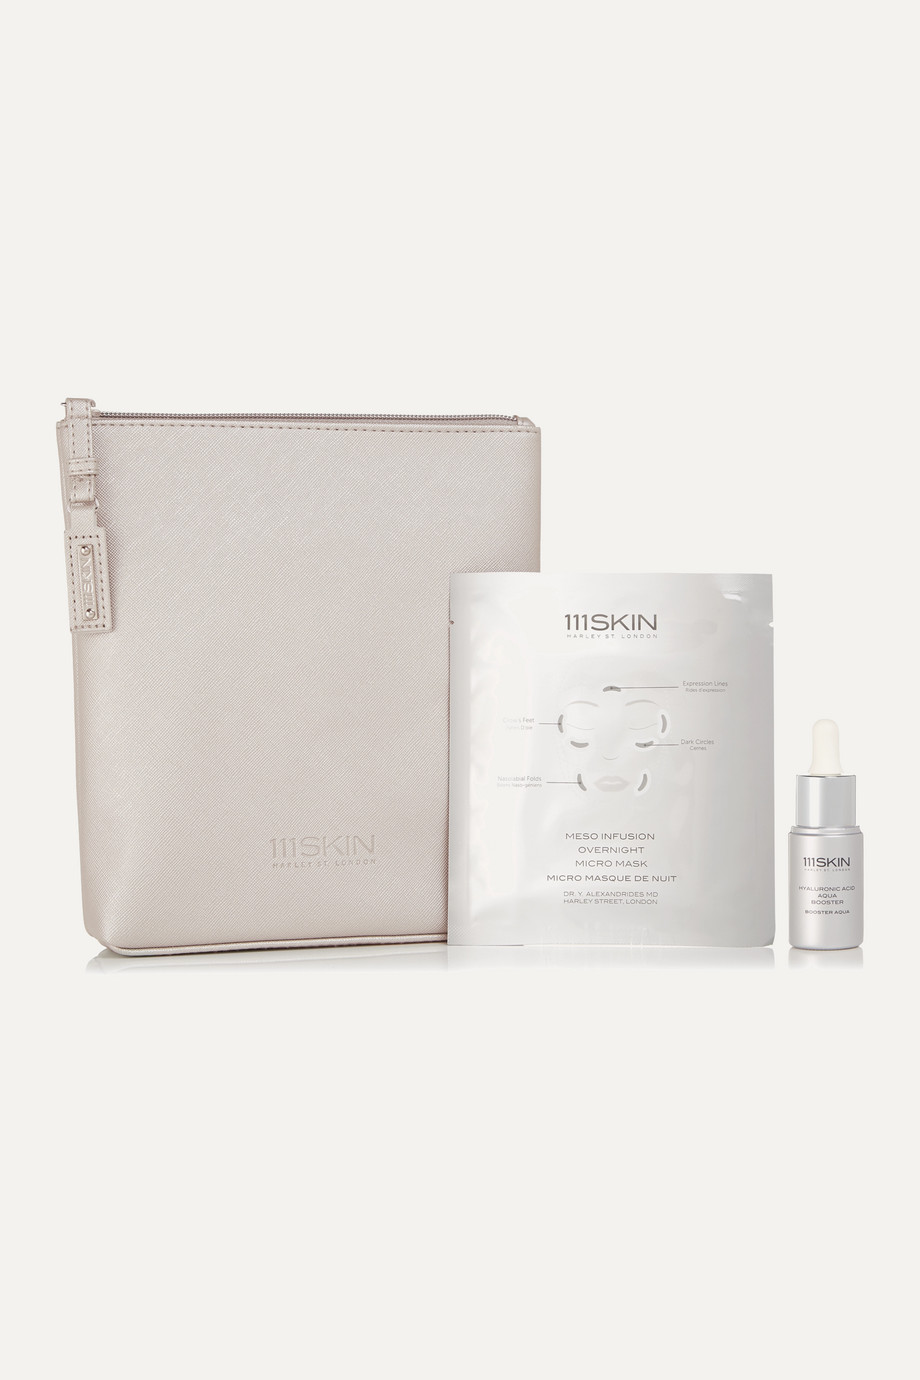 111SKIN The Treatment Kit